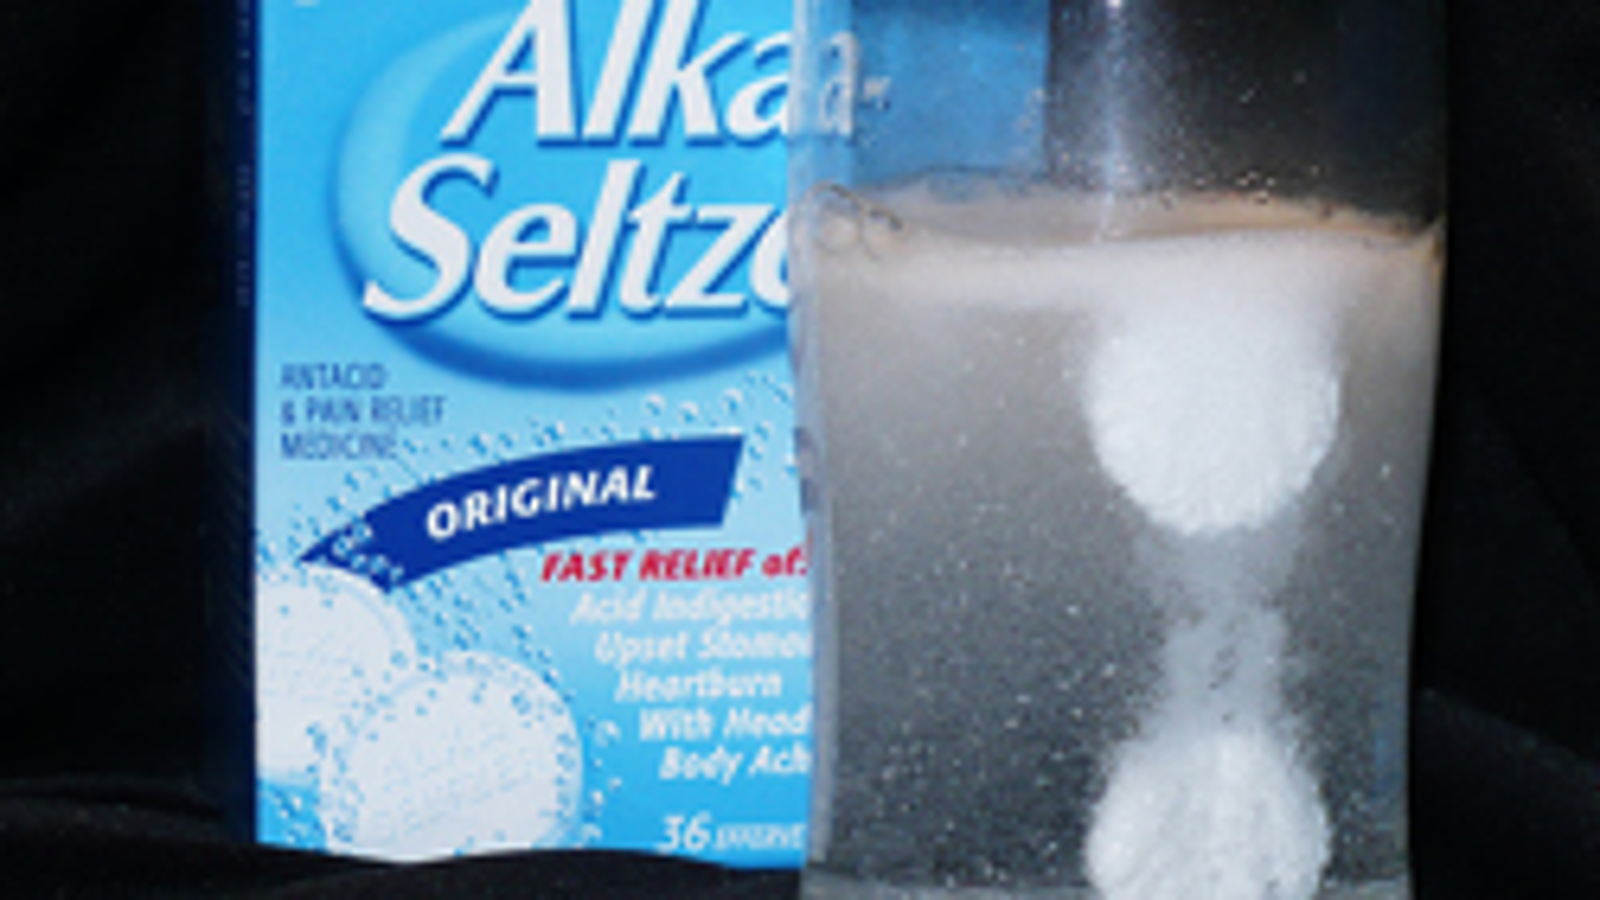 De-Clog Your Drain and Other Uses for Alka-Seltzer